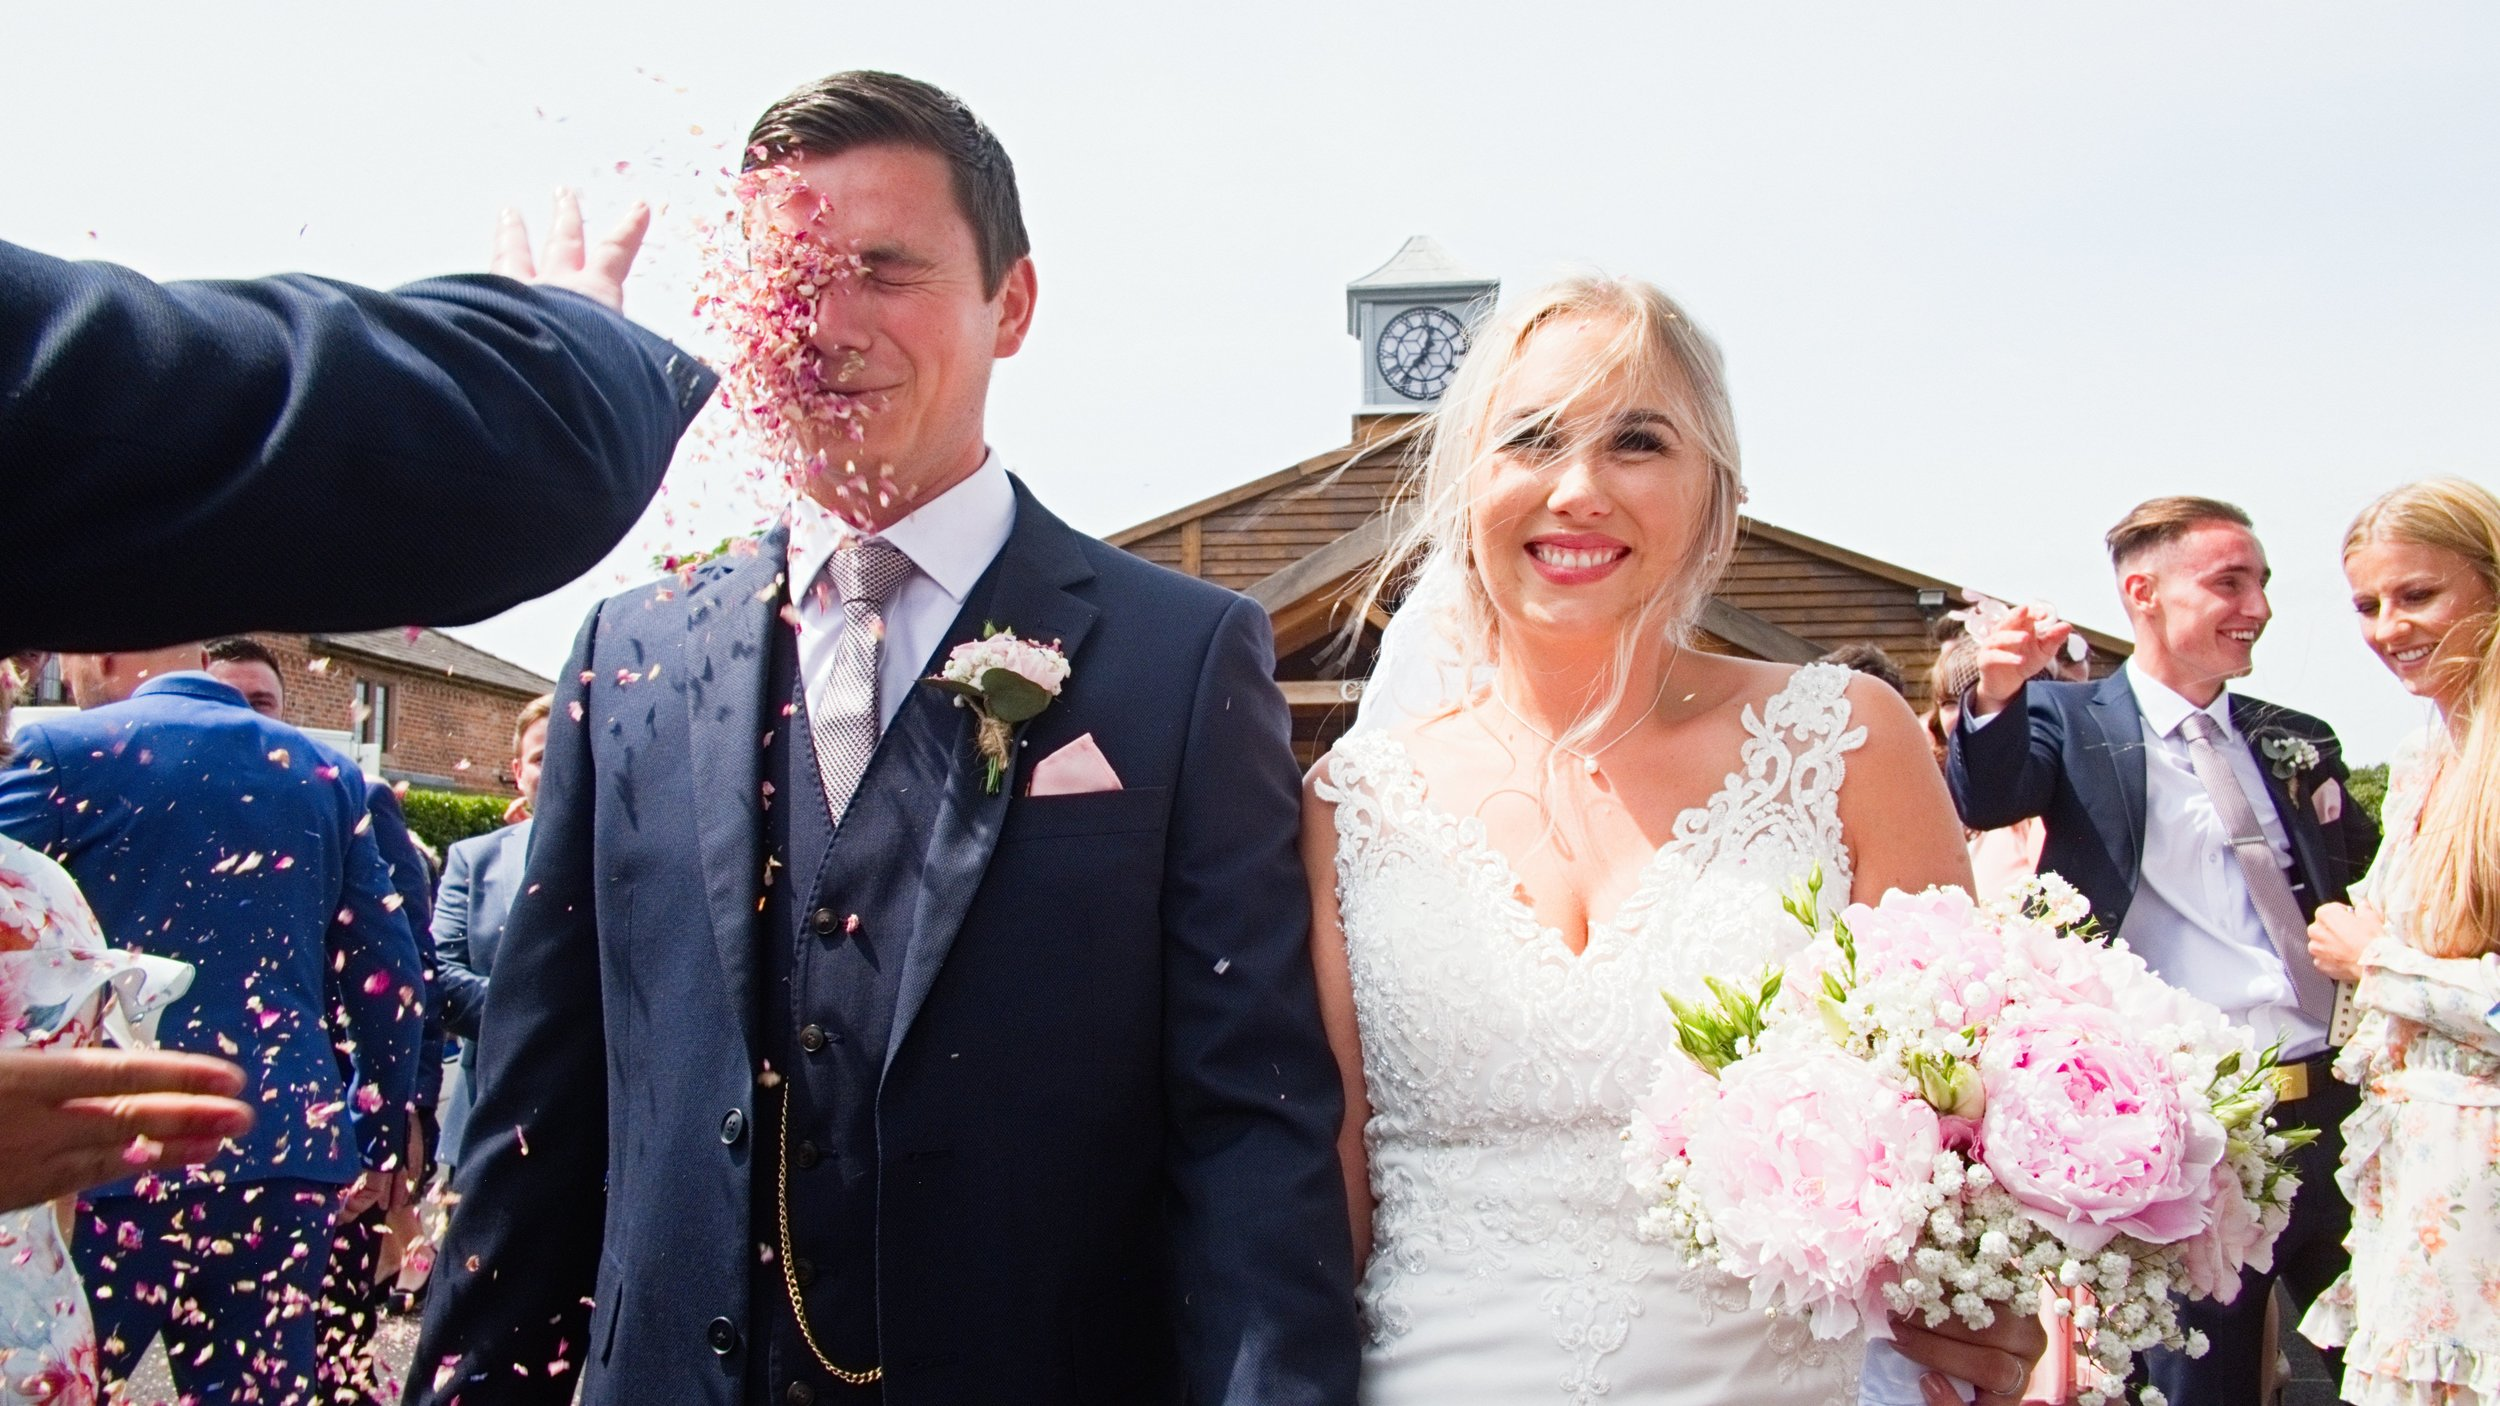 bride and groom at merrydale manor wedding venue in cheshire